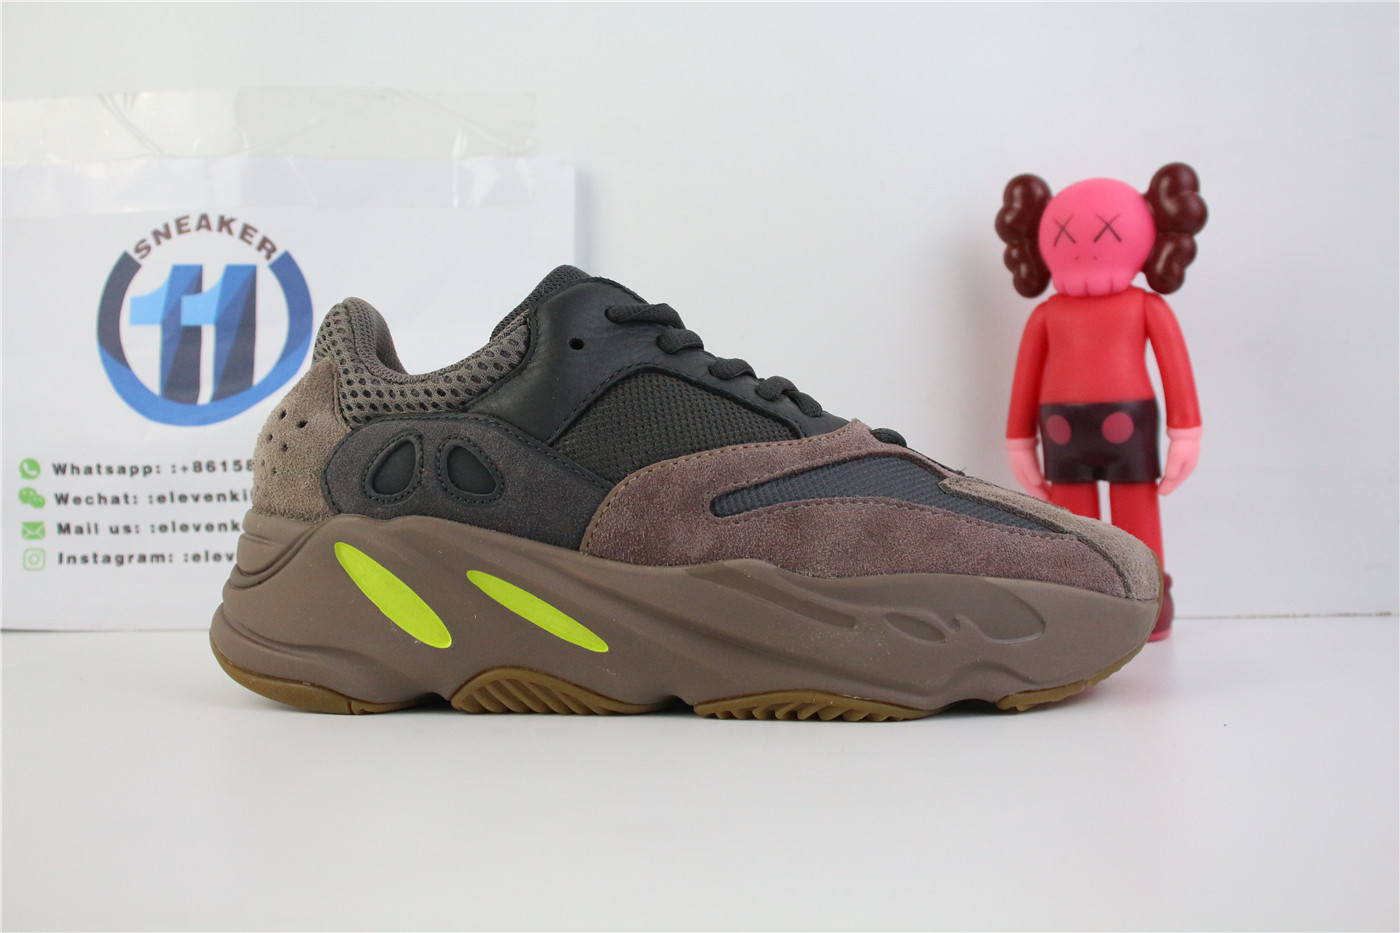 Adidas Yeezy 700 Mauve 9614,All Products : Eleven Kicks, Eleven Kicks